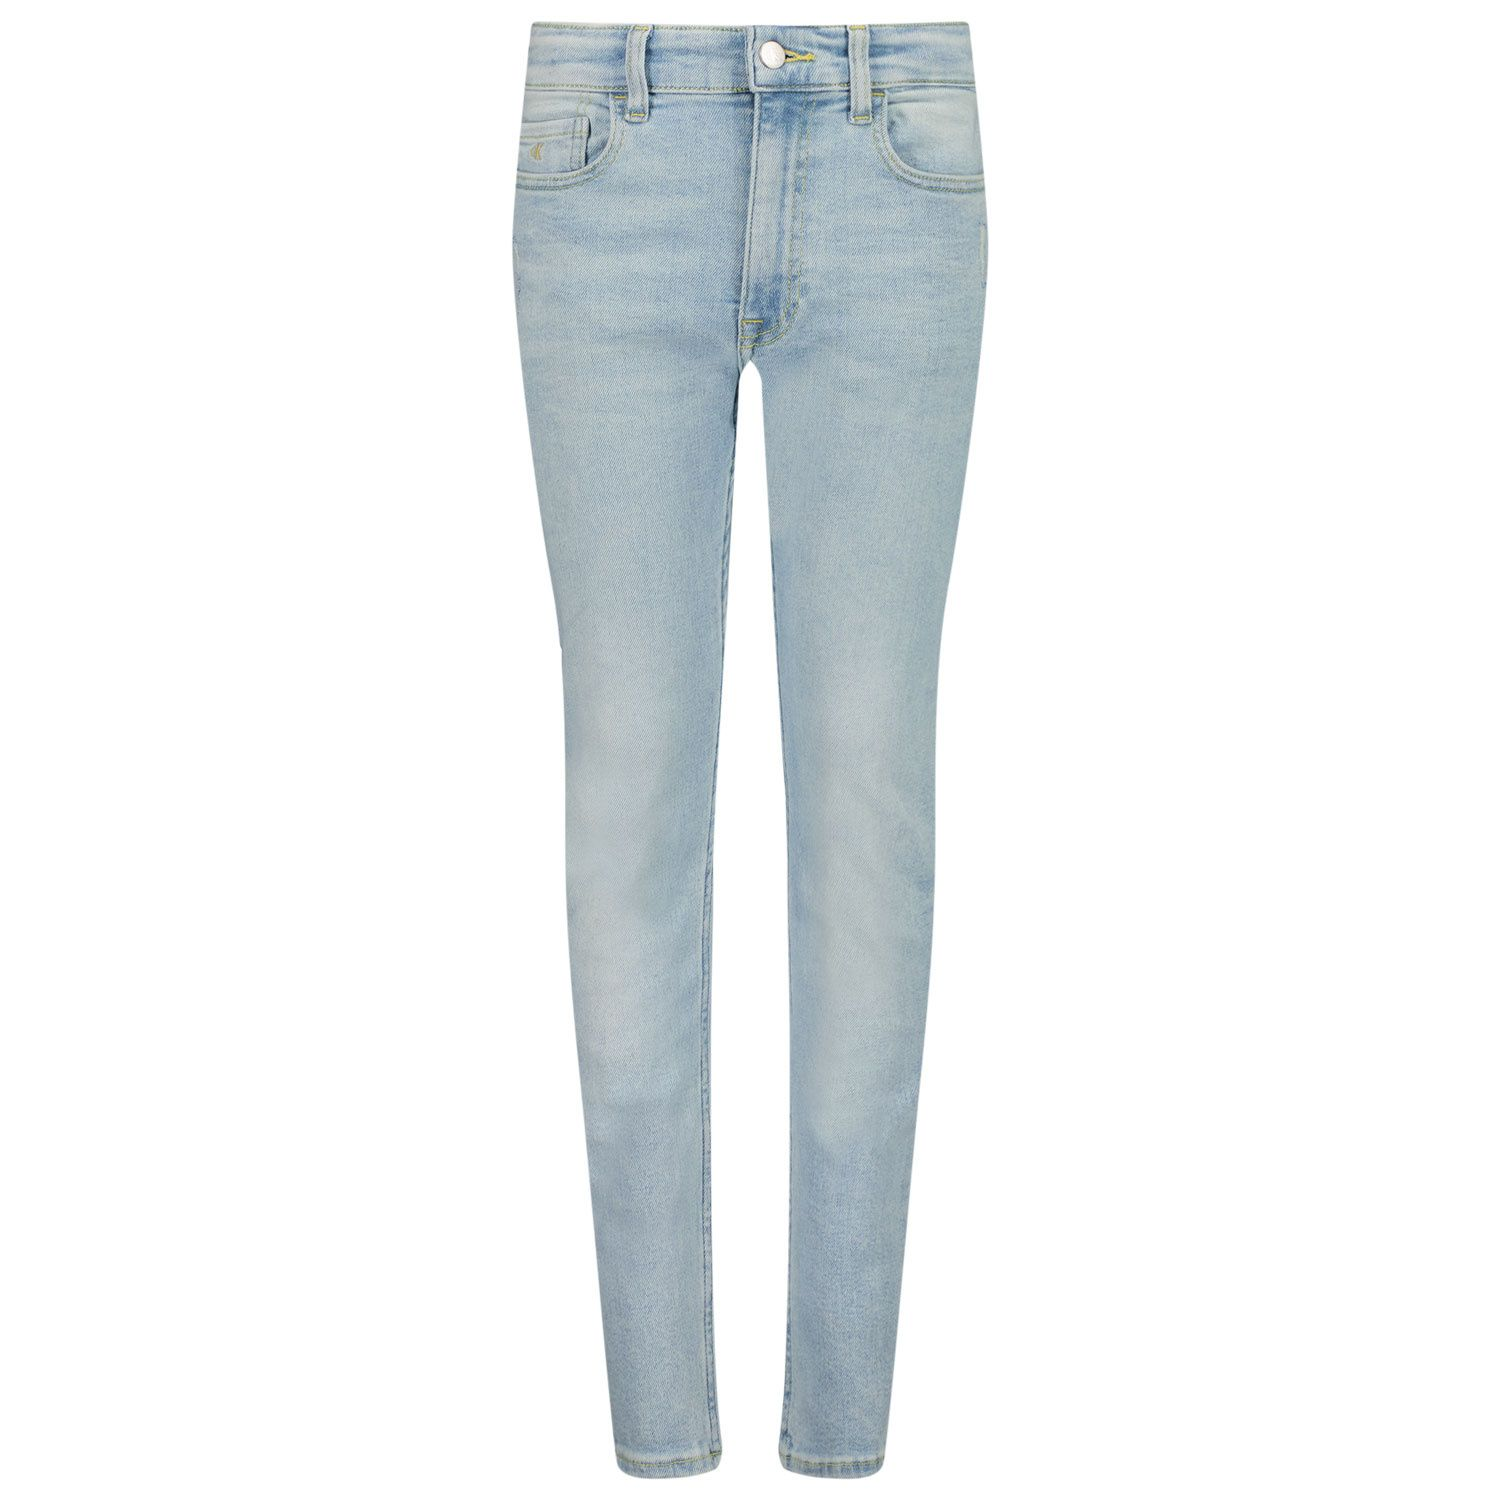 Picture of Calvin Klein IB0IB00414 kids jeans jeans